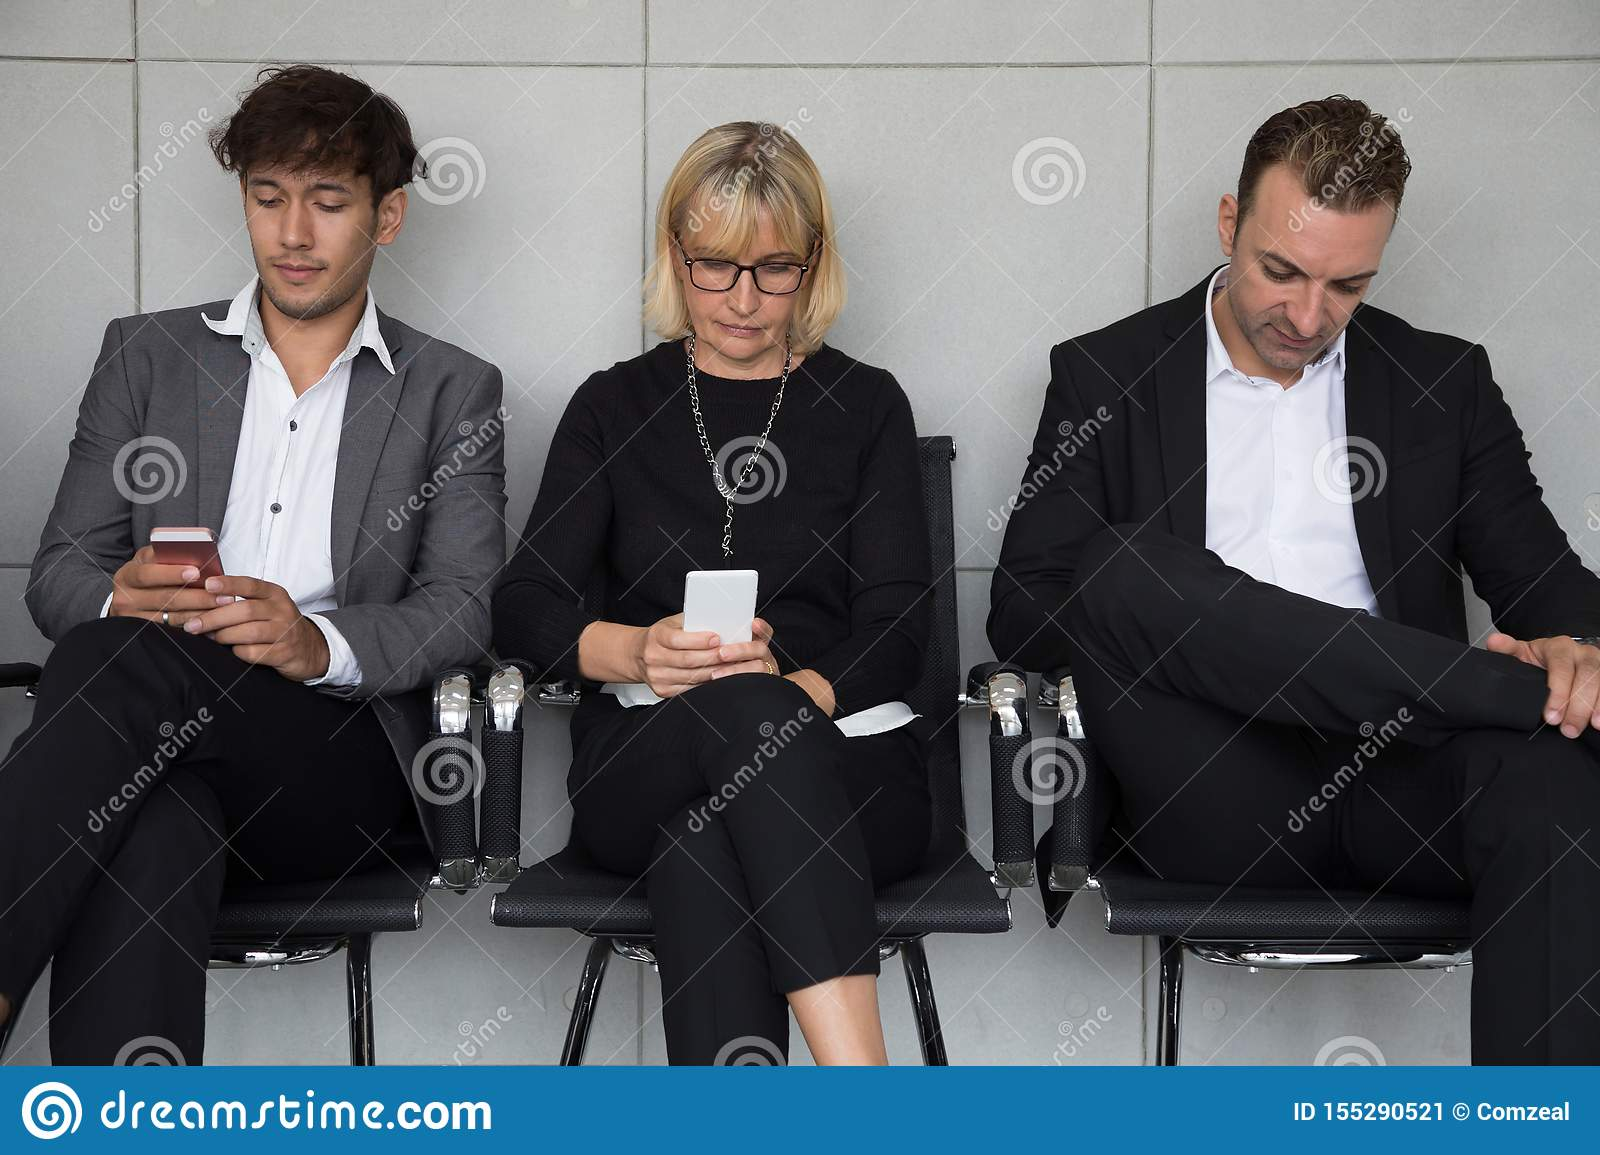 People sitting waiting for a job interview and using social media application on mobile phone.